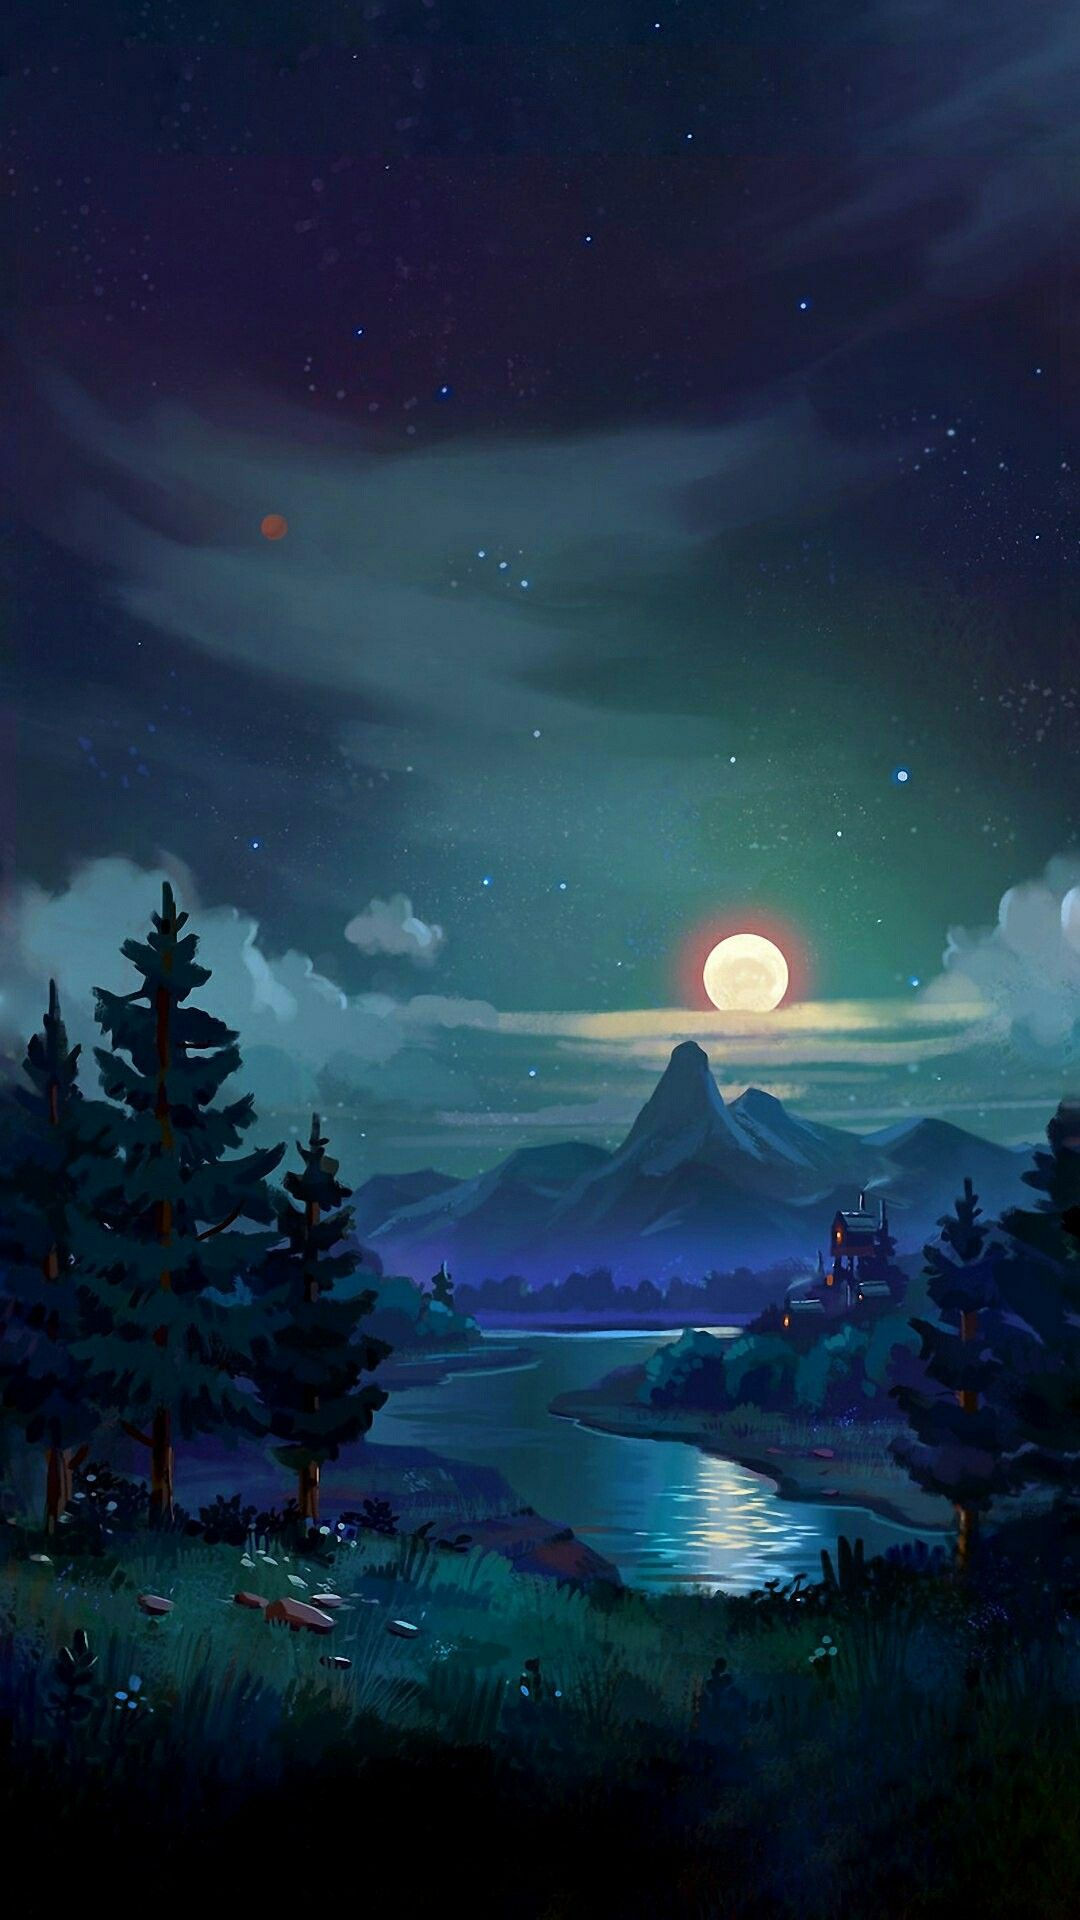 Pin by Hann Red on Animated wallpapers Anime scenery